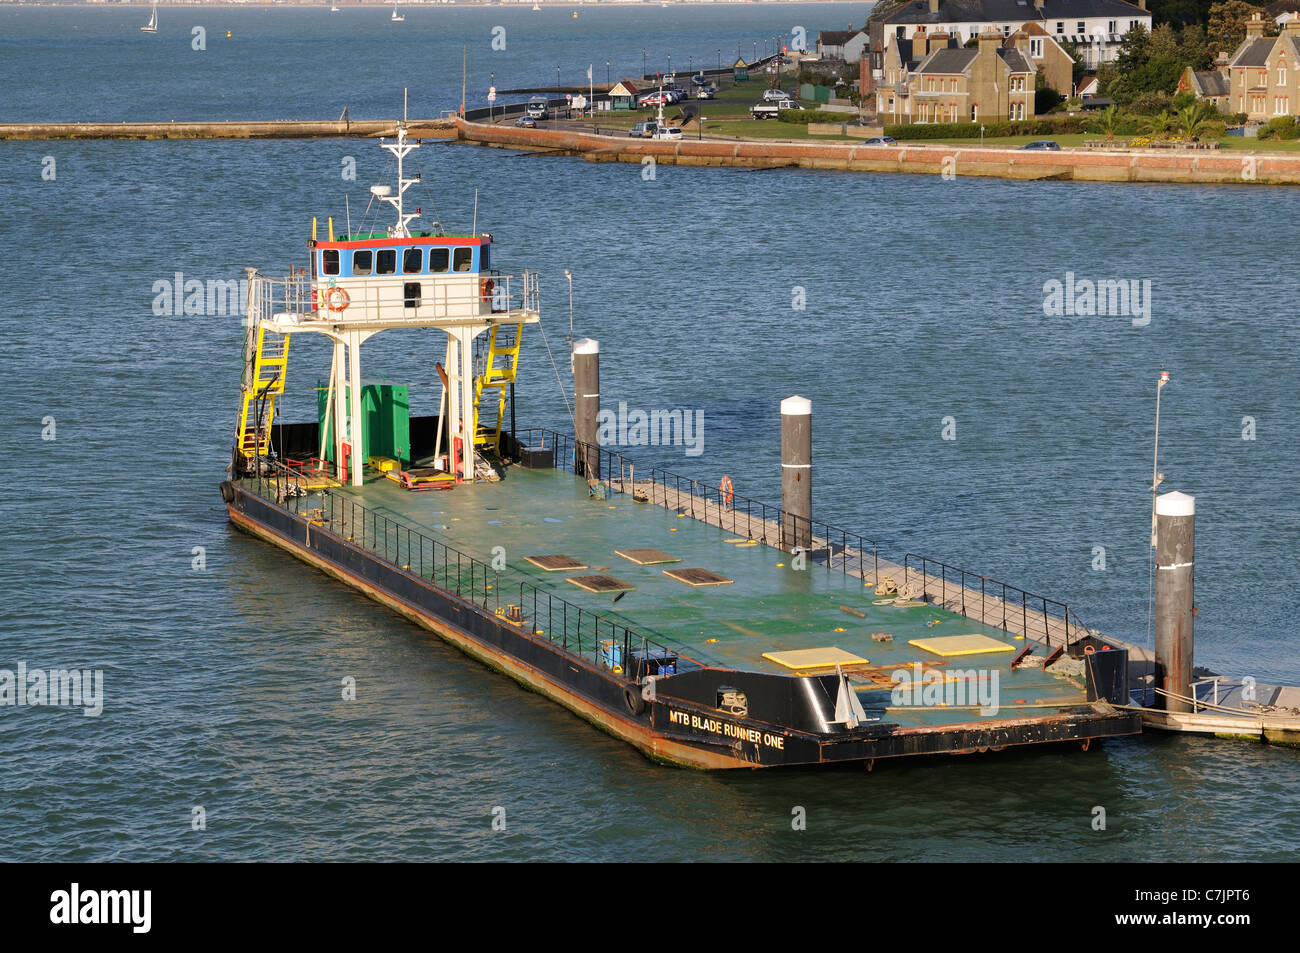 MTB Blade Runner One a open deck freight vessel for shallow water operating in the Southampton & Isle of Wight - Stock Image